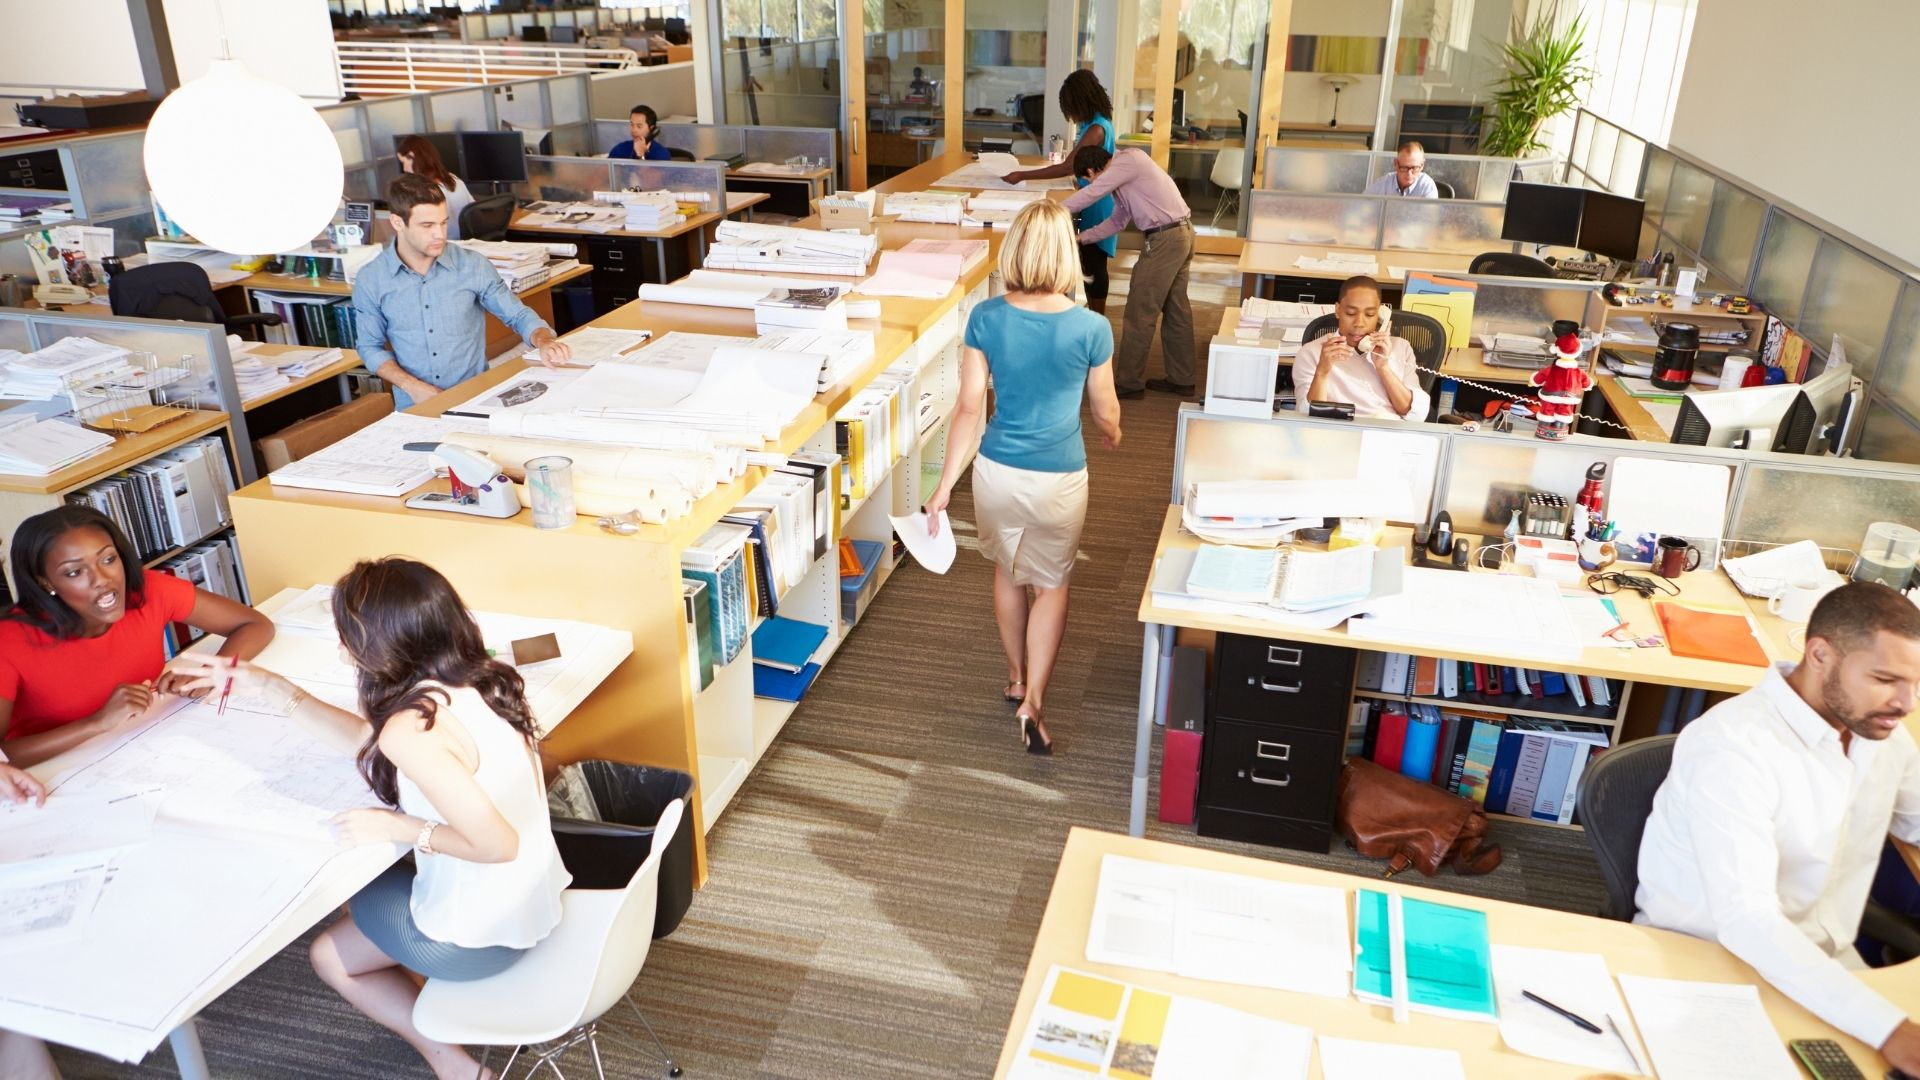 Older Generations Anxious About Health Risks of Returning to Work